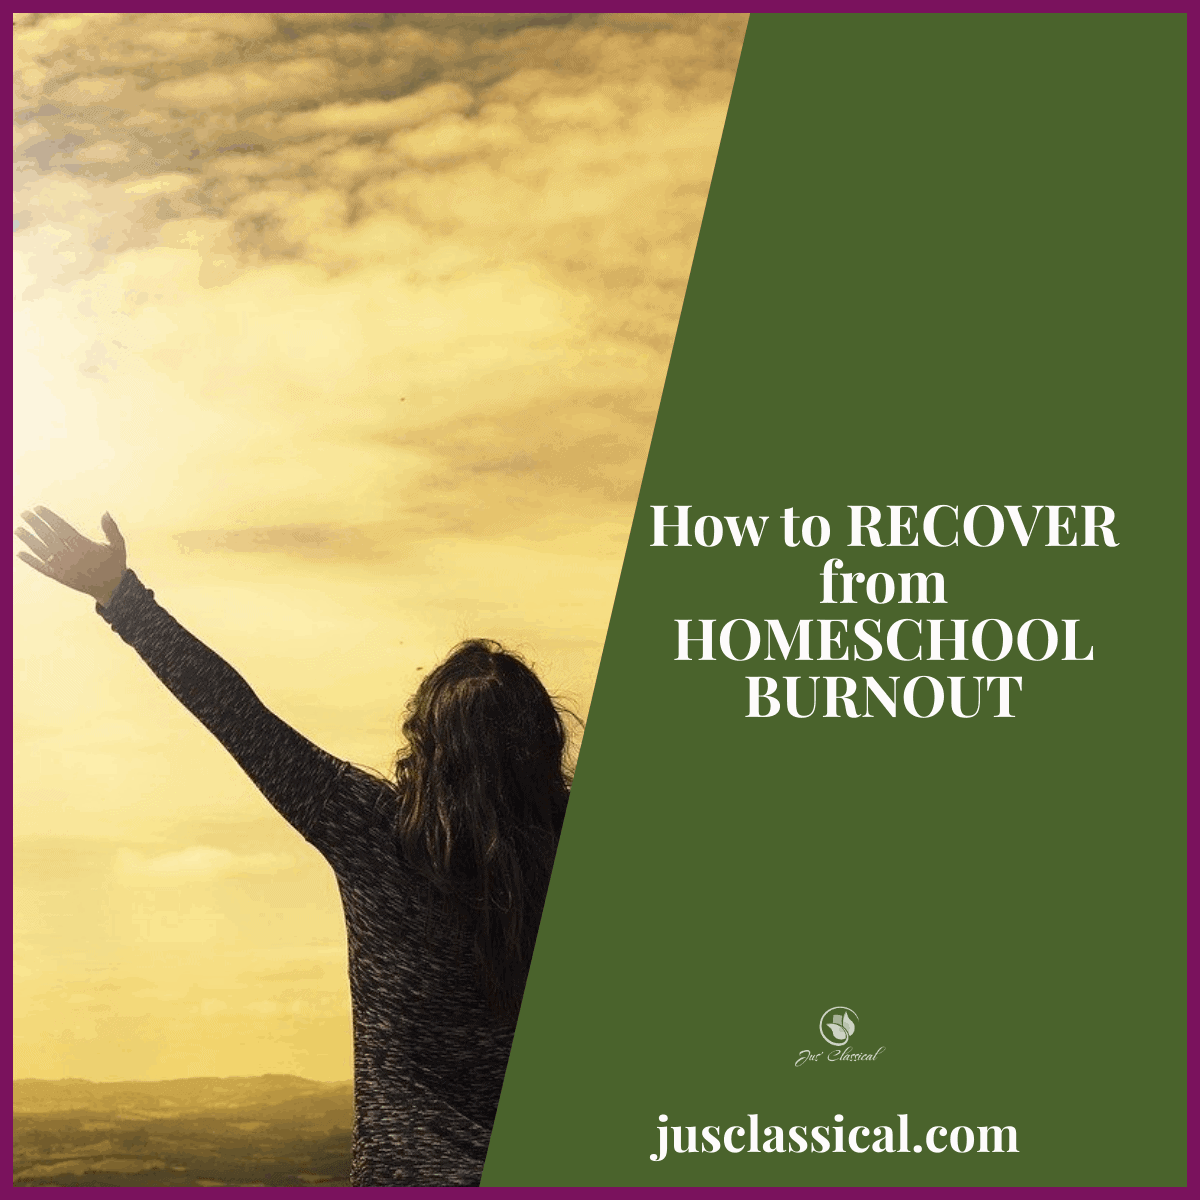 Tips on How to Recover from Homeschool Burnout